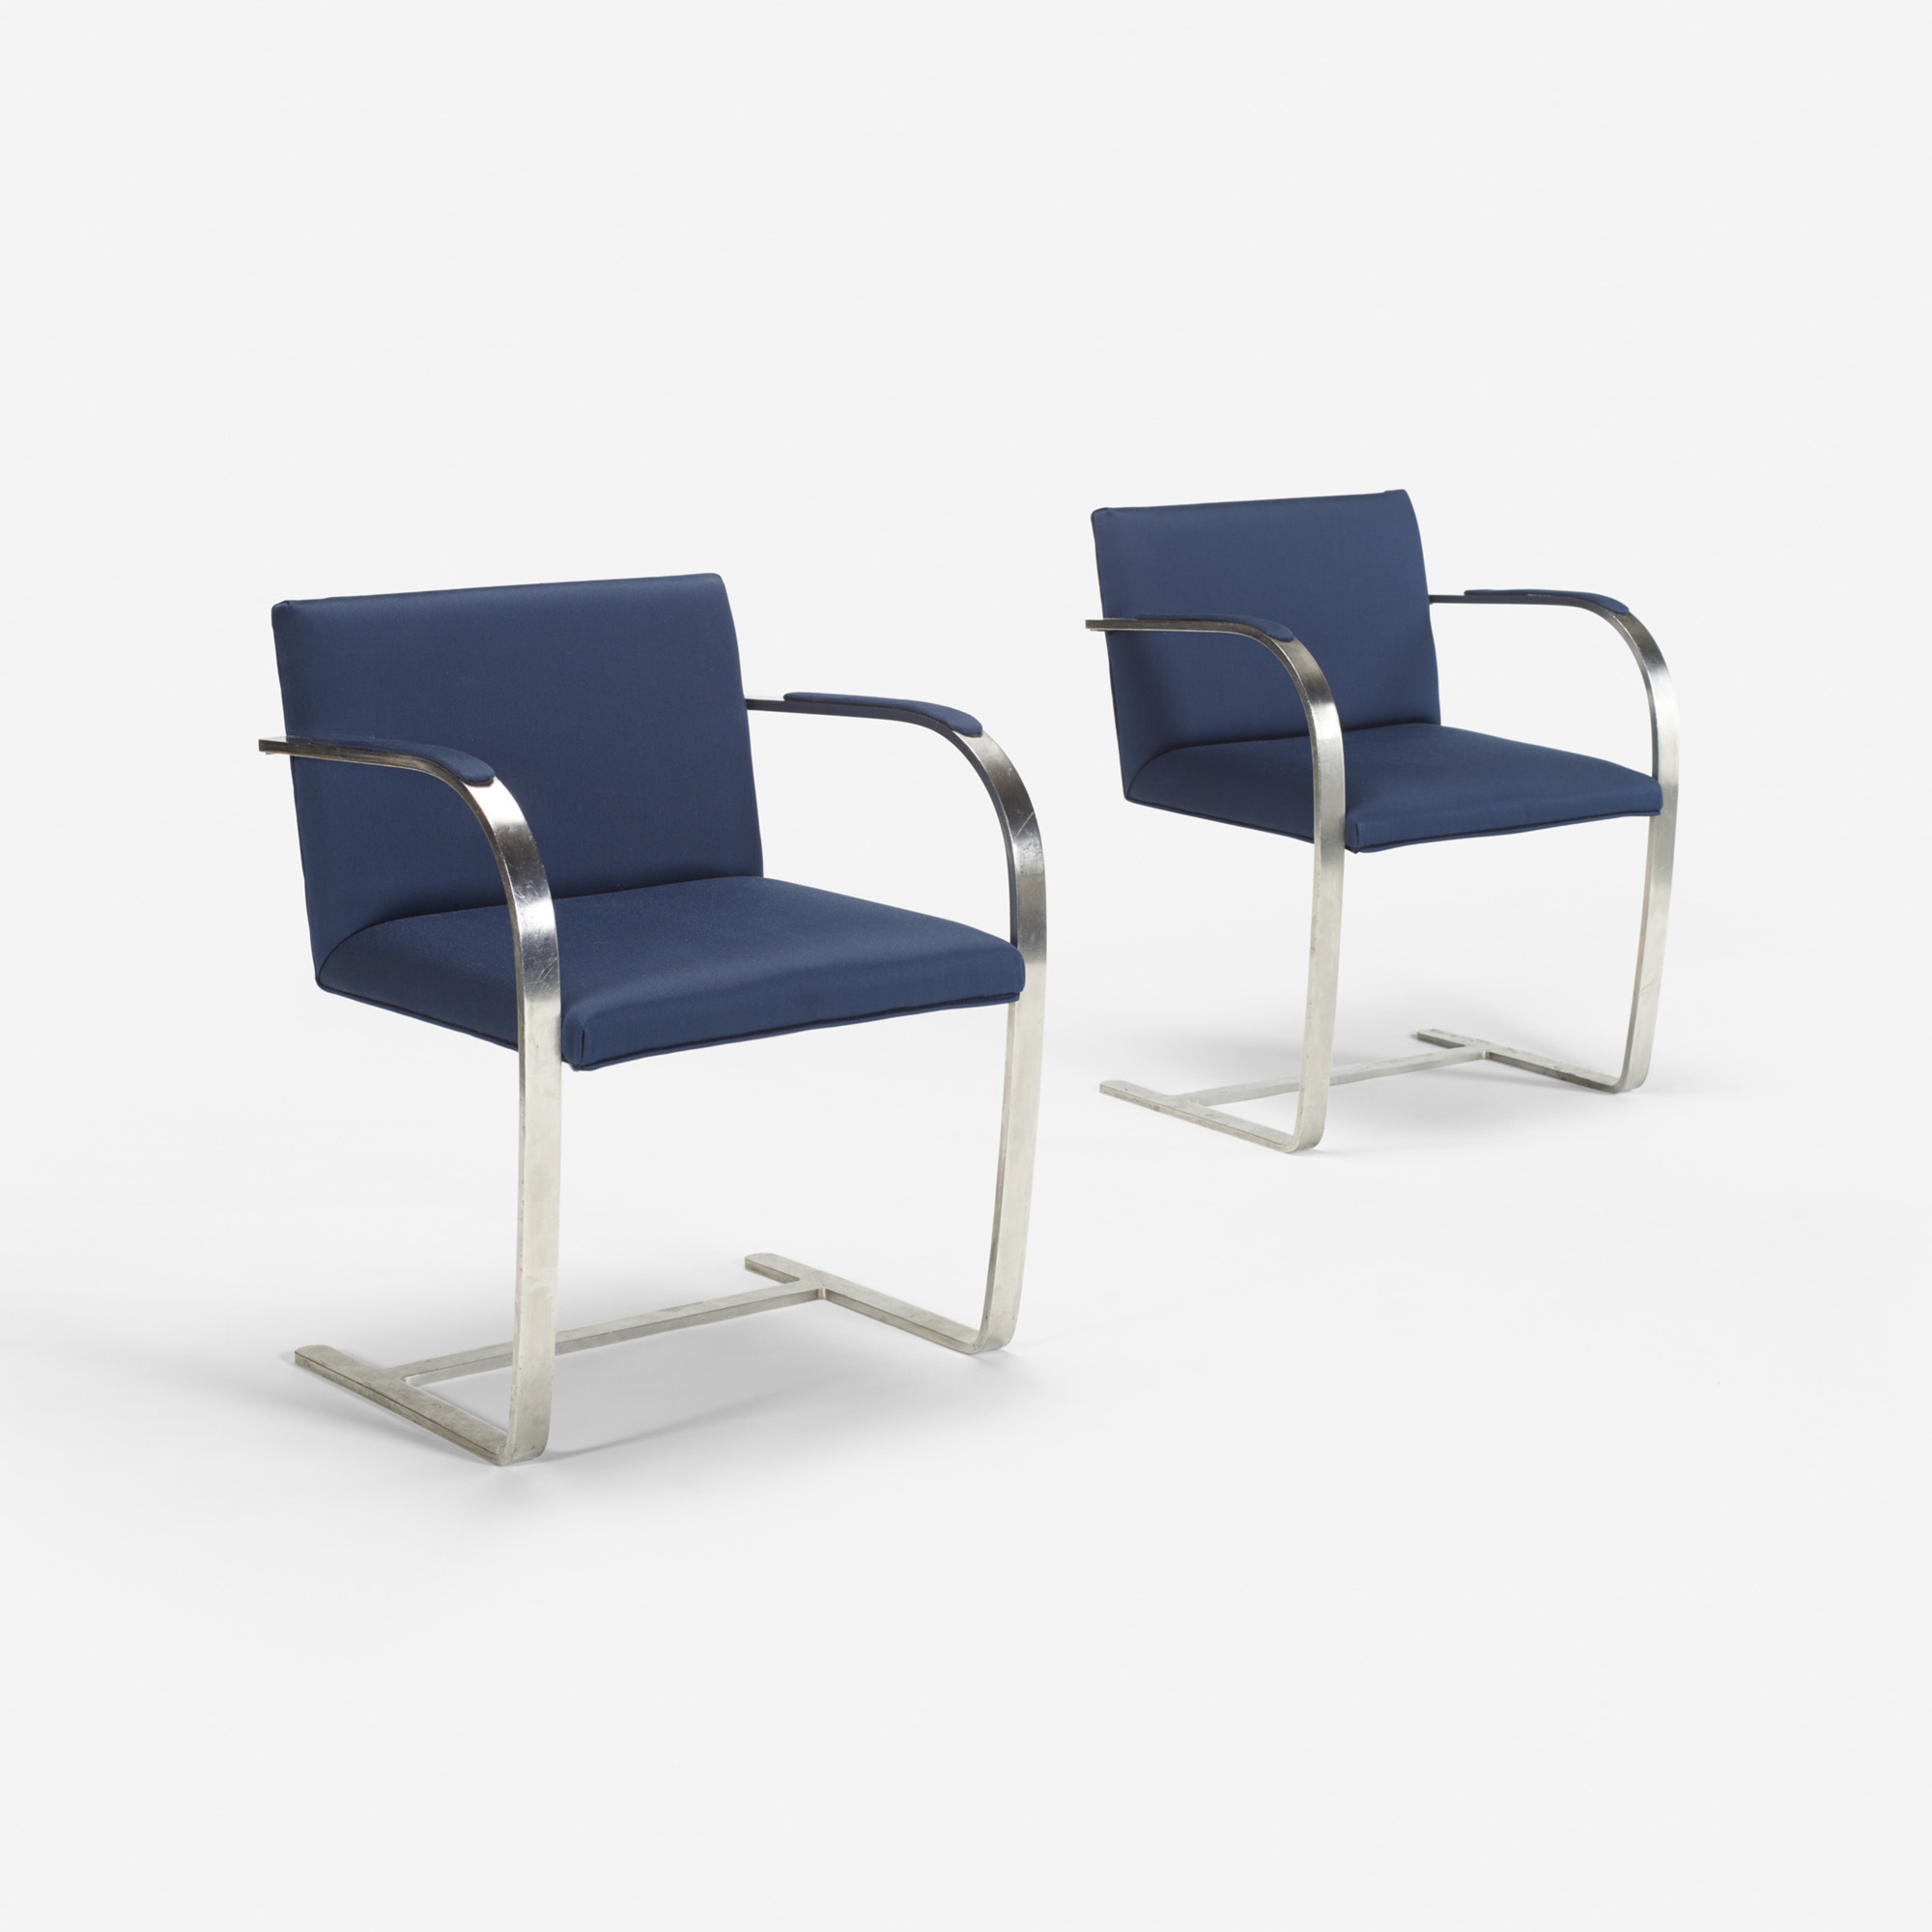 707: Ludwig Mies van der Rohe / Brno chairs from The Four Seasons, pair (1 of 1)